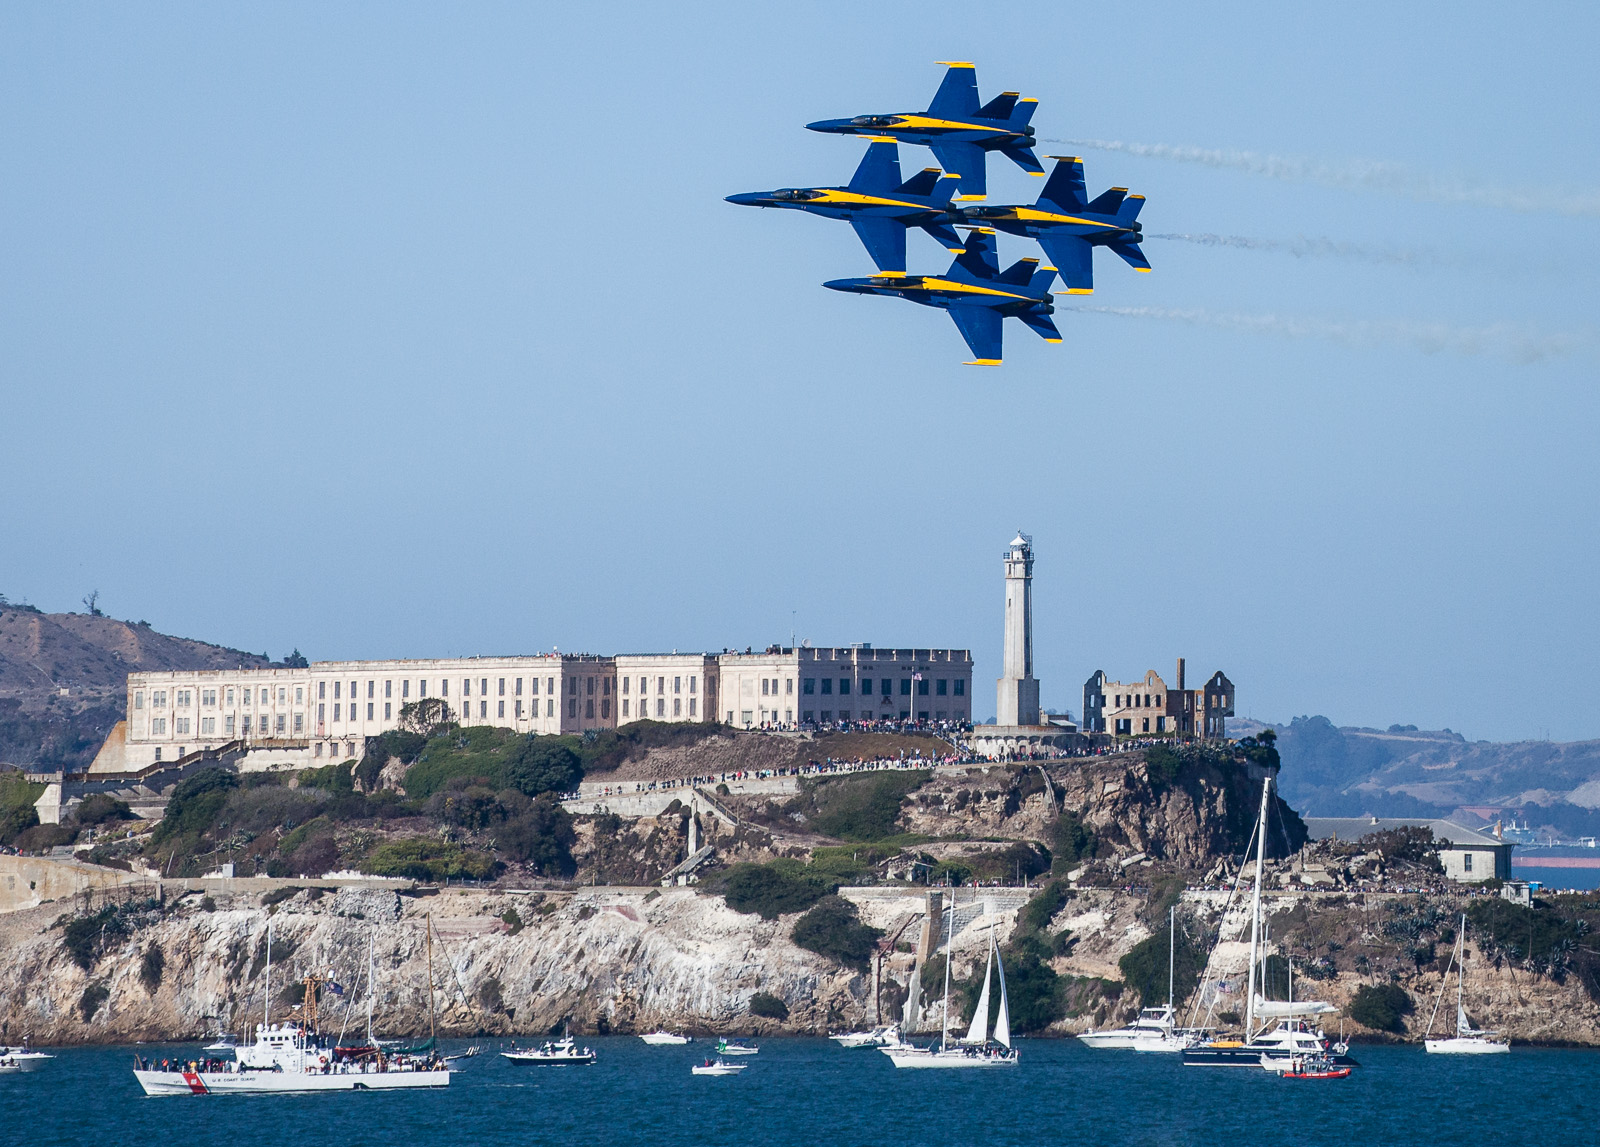 Blue Angels low pass formation over SF harbor and Alcatraz - Fleet Week 2012